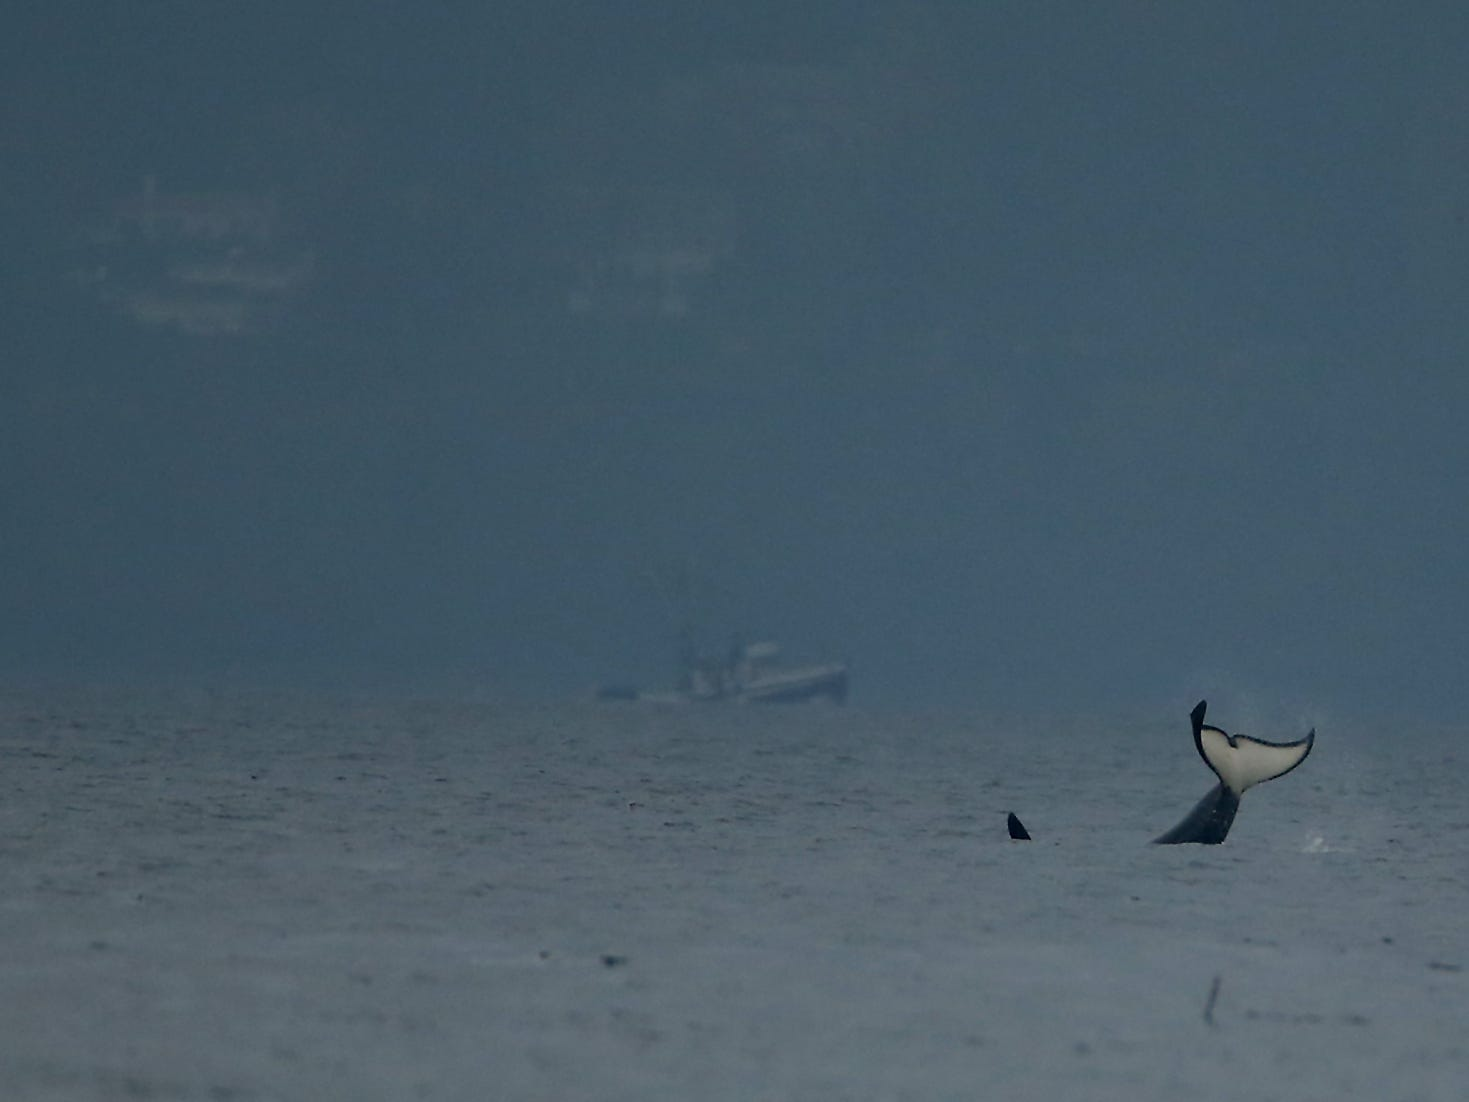 A southern resident orca slaps its tail while heading north in the middle of the channel, as seen from Fay Bainbridge Park on Wednesday, November 14, 2018. Members of J and K pod were spotted throughout the day in Puget Sound.